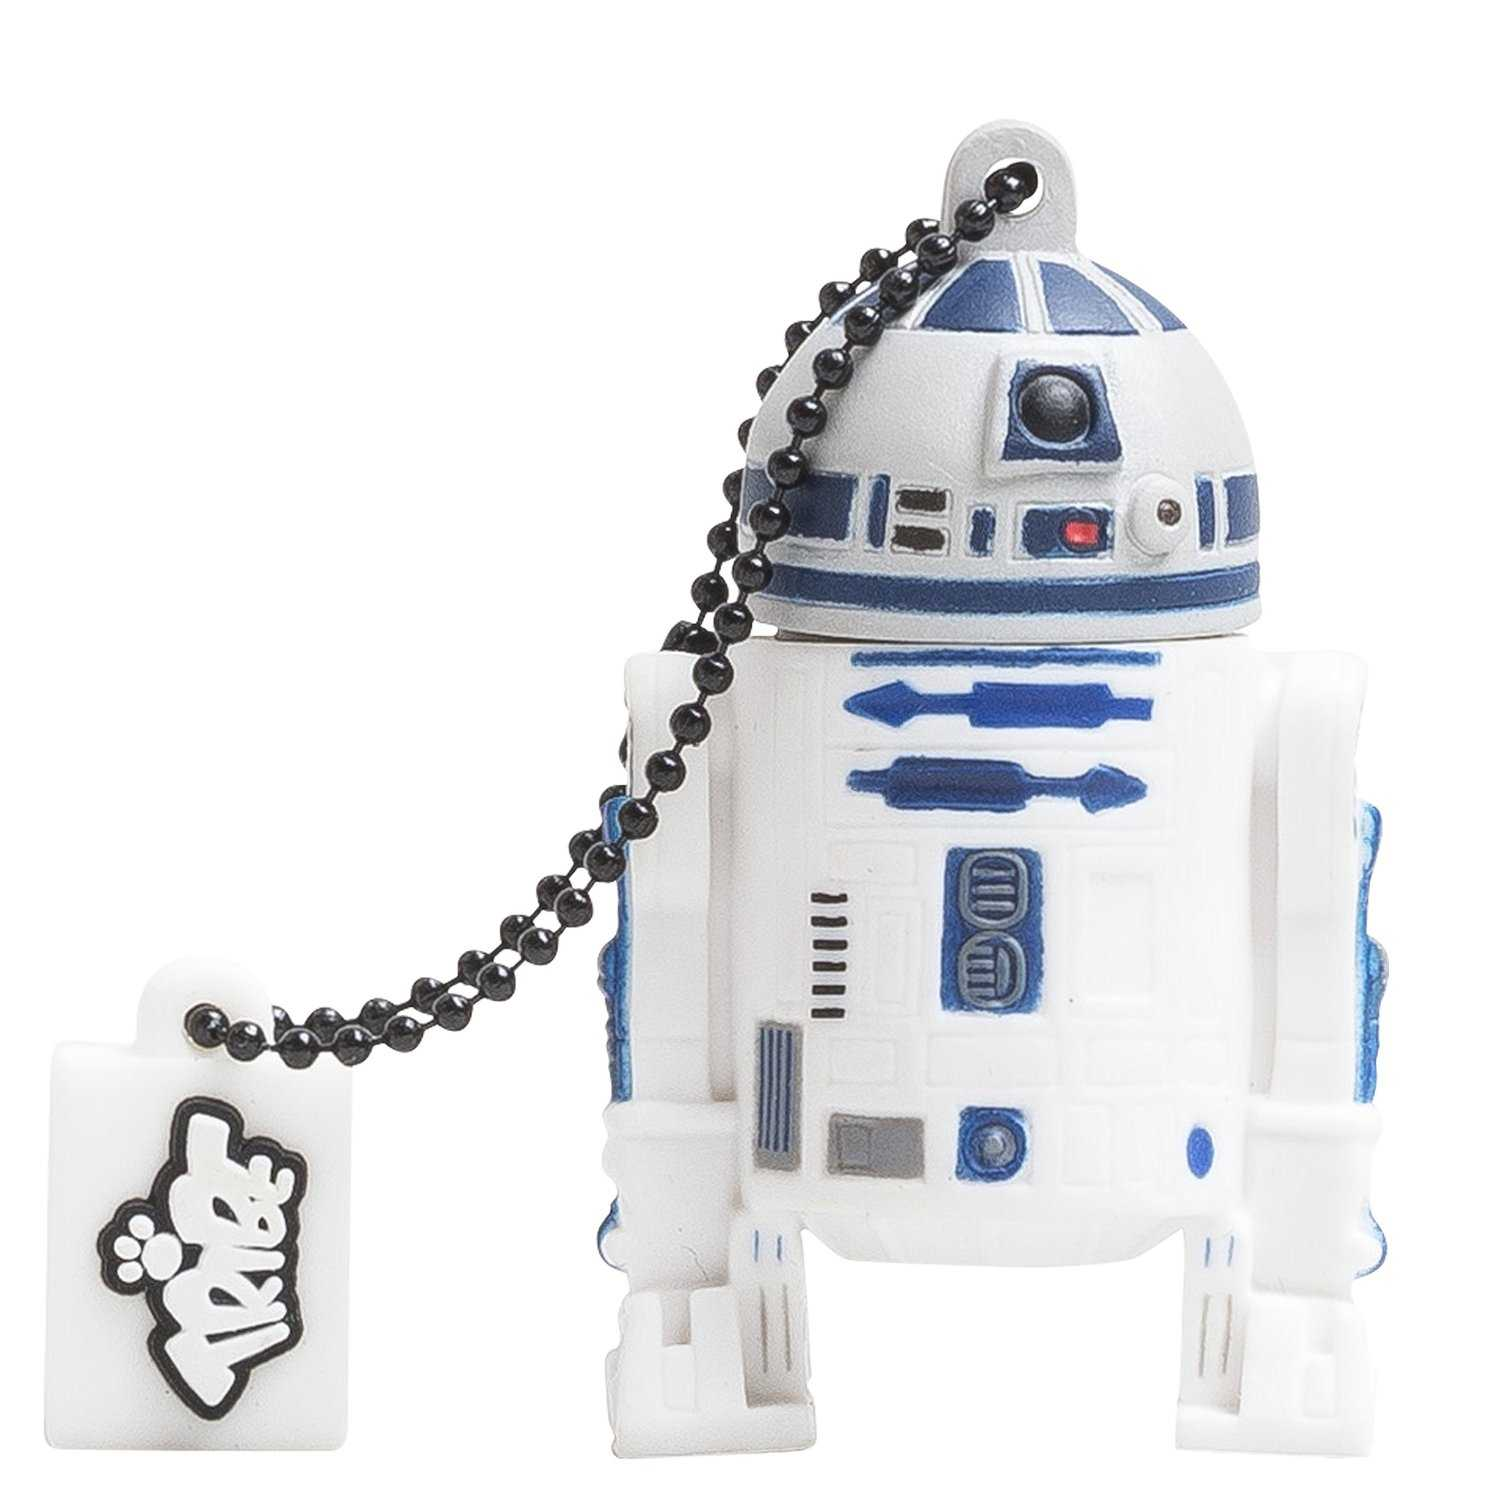 Compare prices for Tribe 16GB Star Wars R2D2 USB Flash Drive - 15MBs